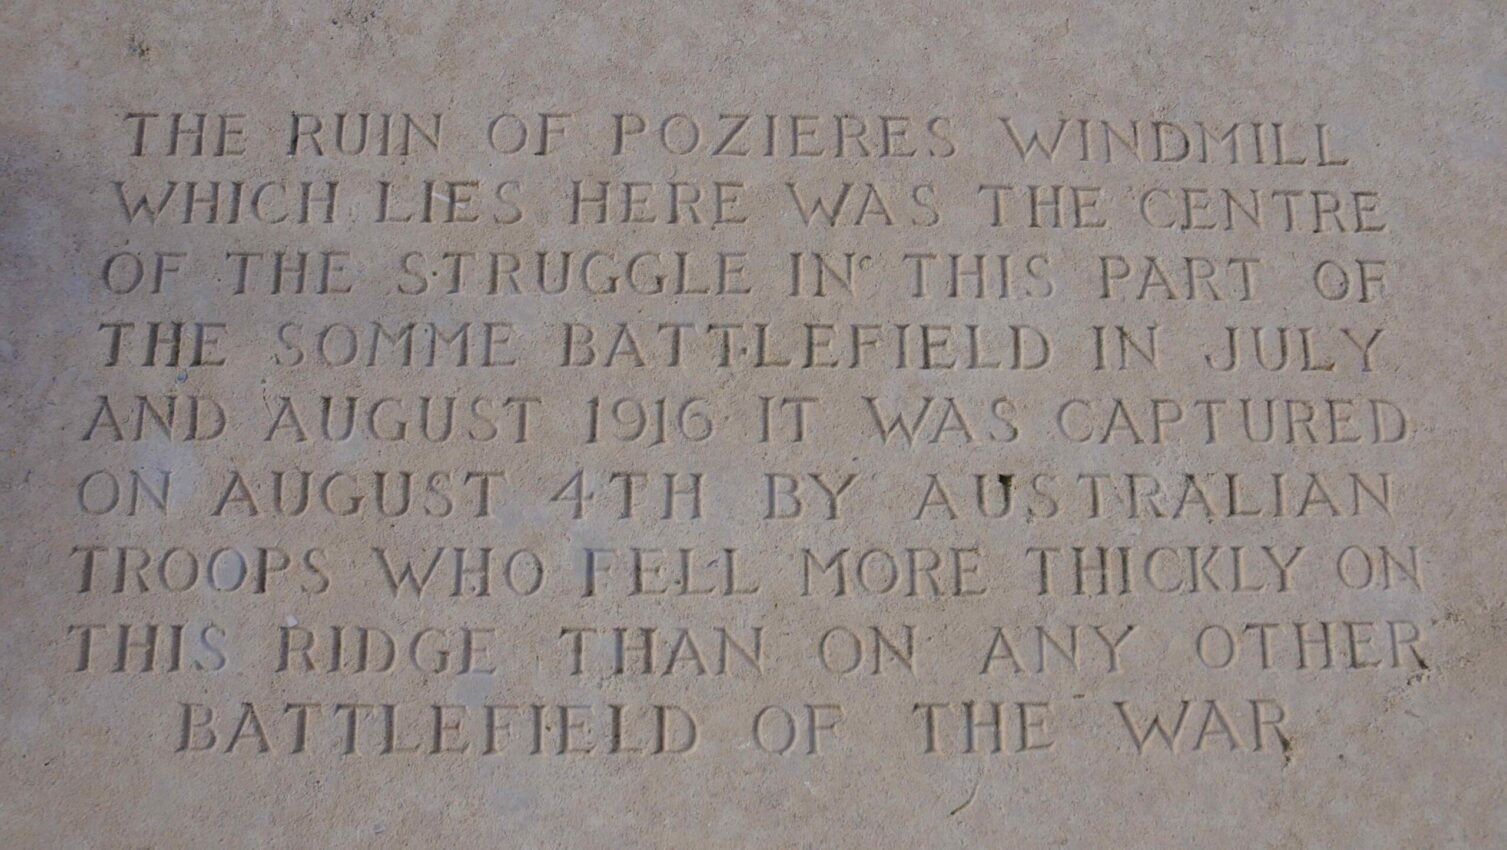 Plaque in honour of Australian troops at the Pozieres windmill - The Australian Memorial, Pozieres Windmill - The Battle Of Pozieres - World War One Battles